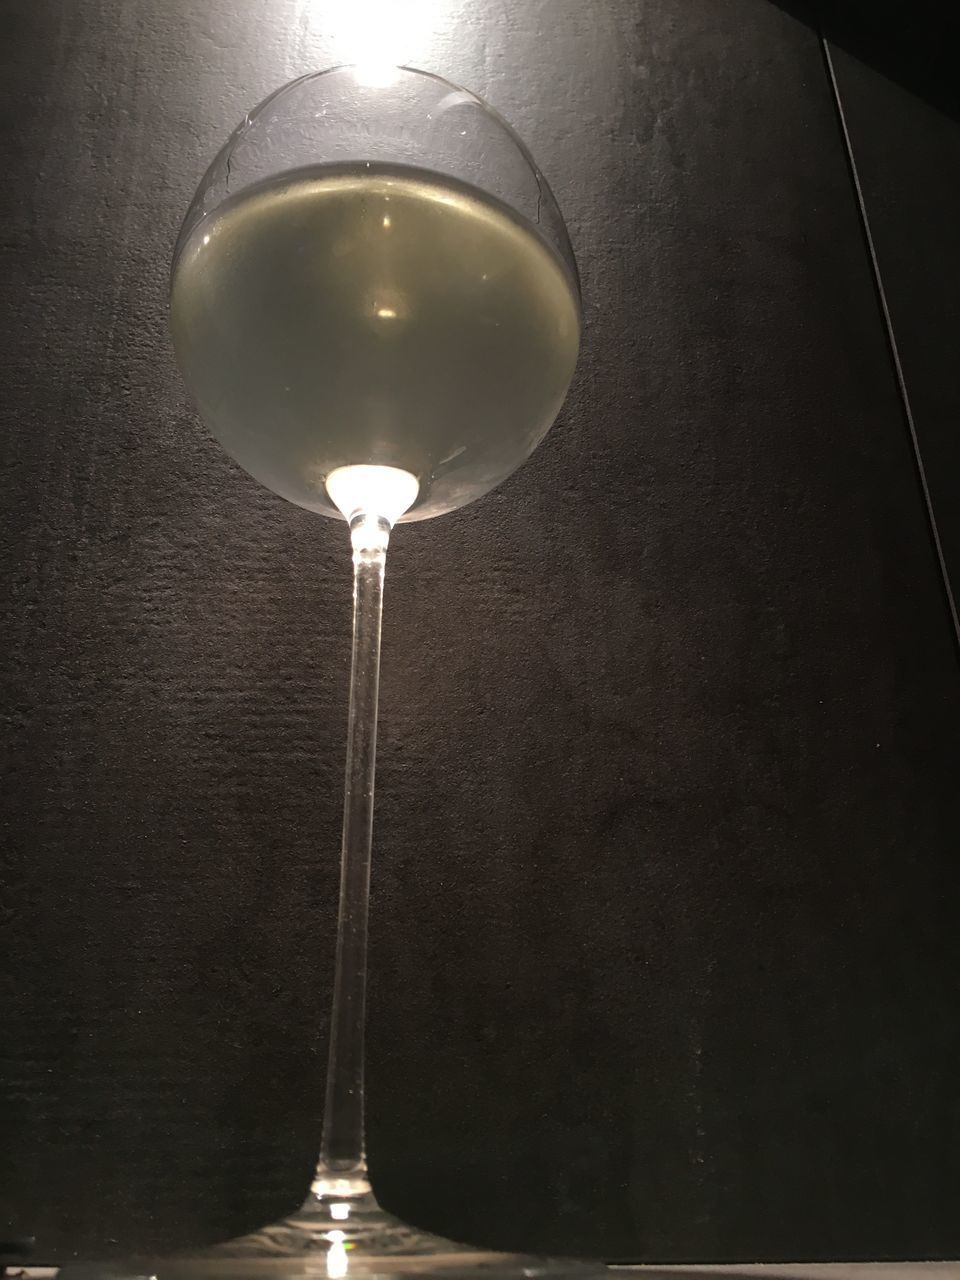 LOW ANGLE VIEW OF WINE GLASS ON ILLUMINATED TABLE